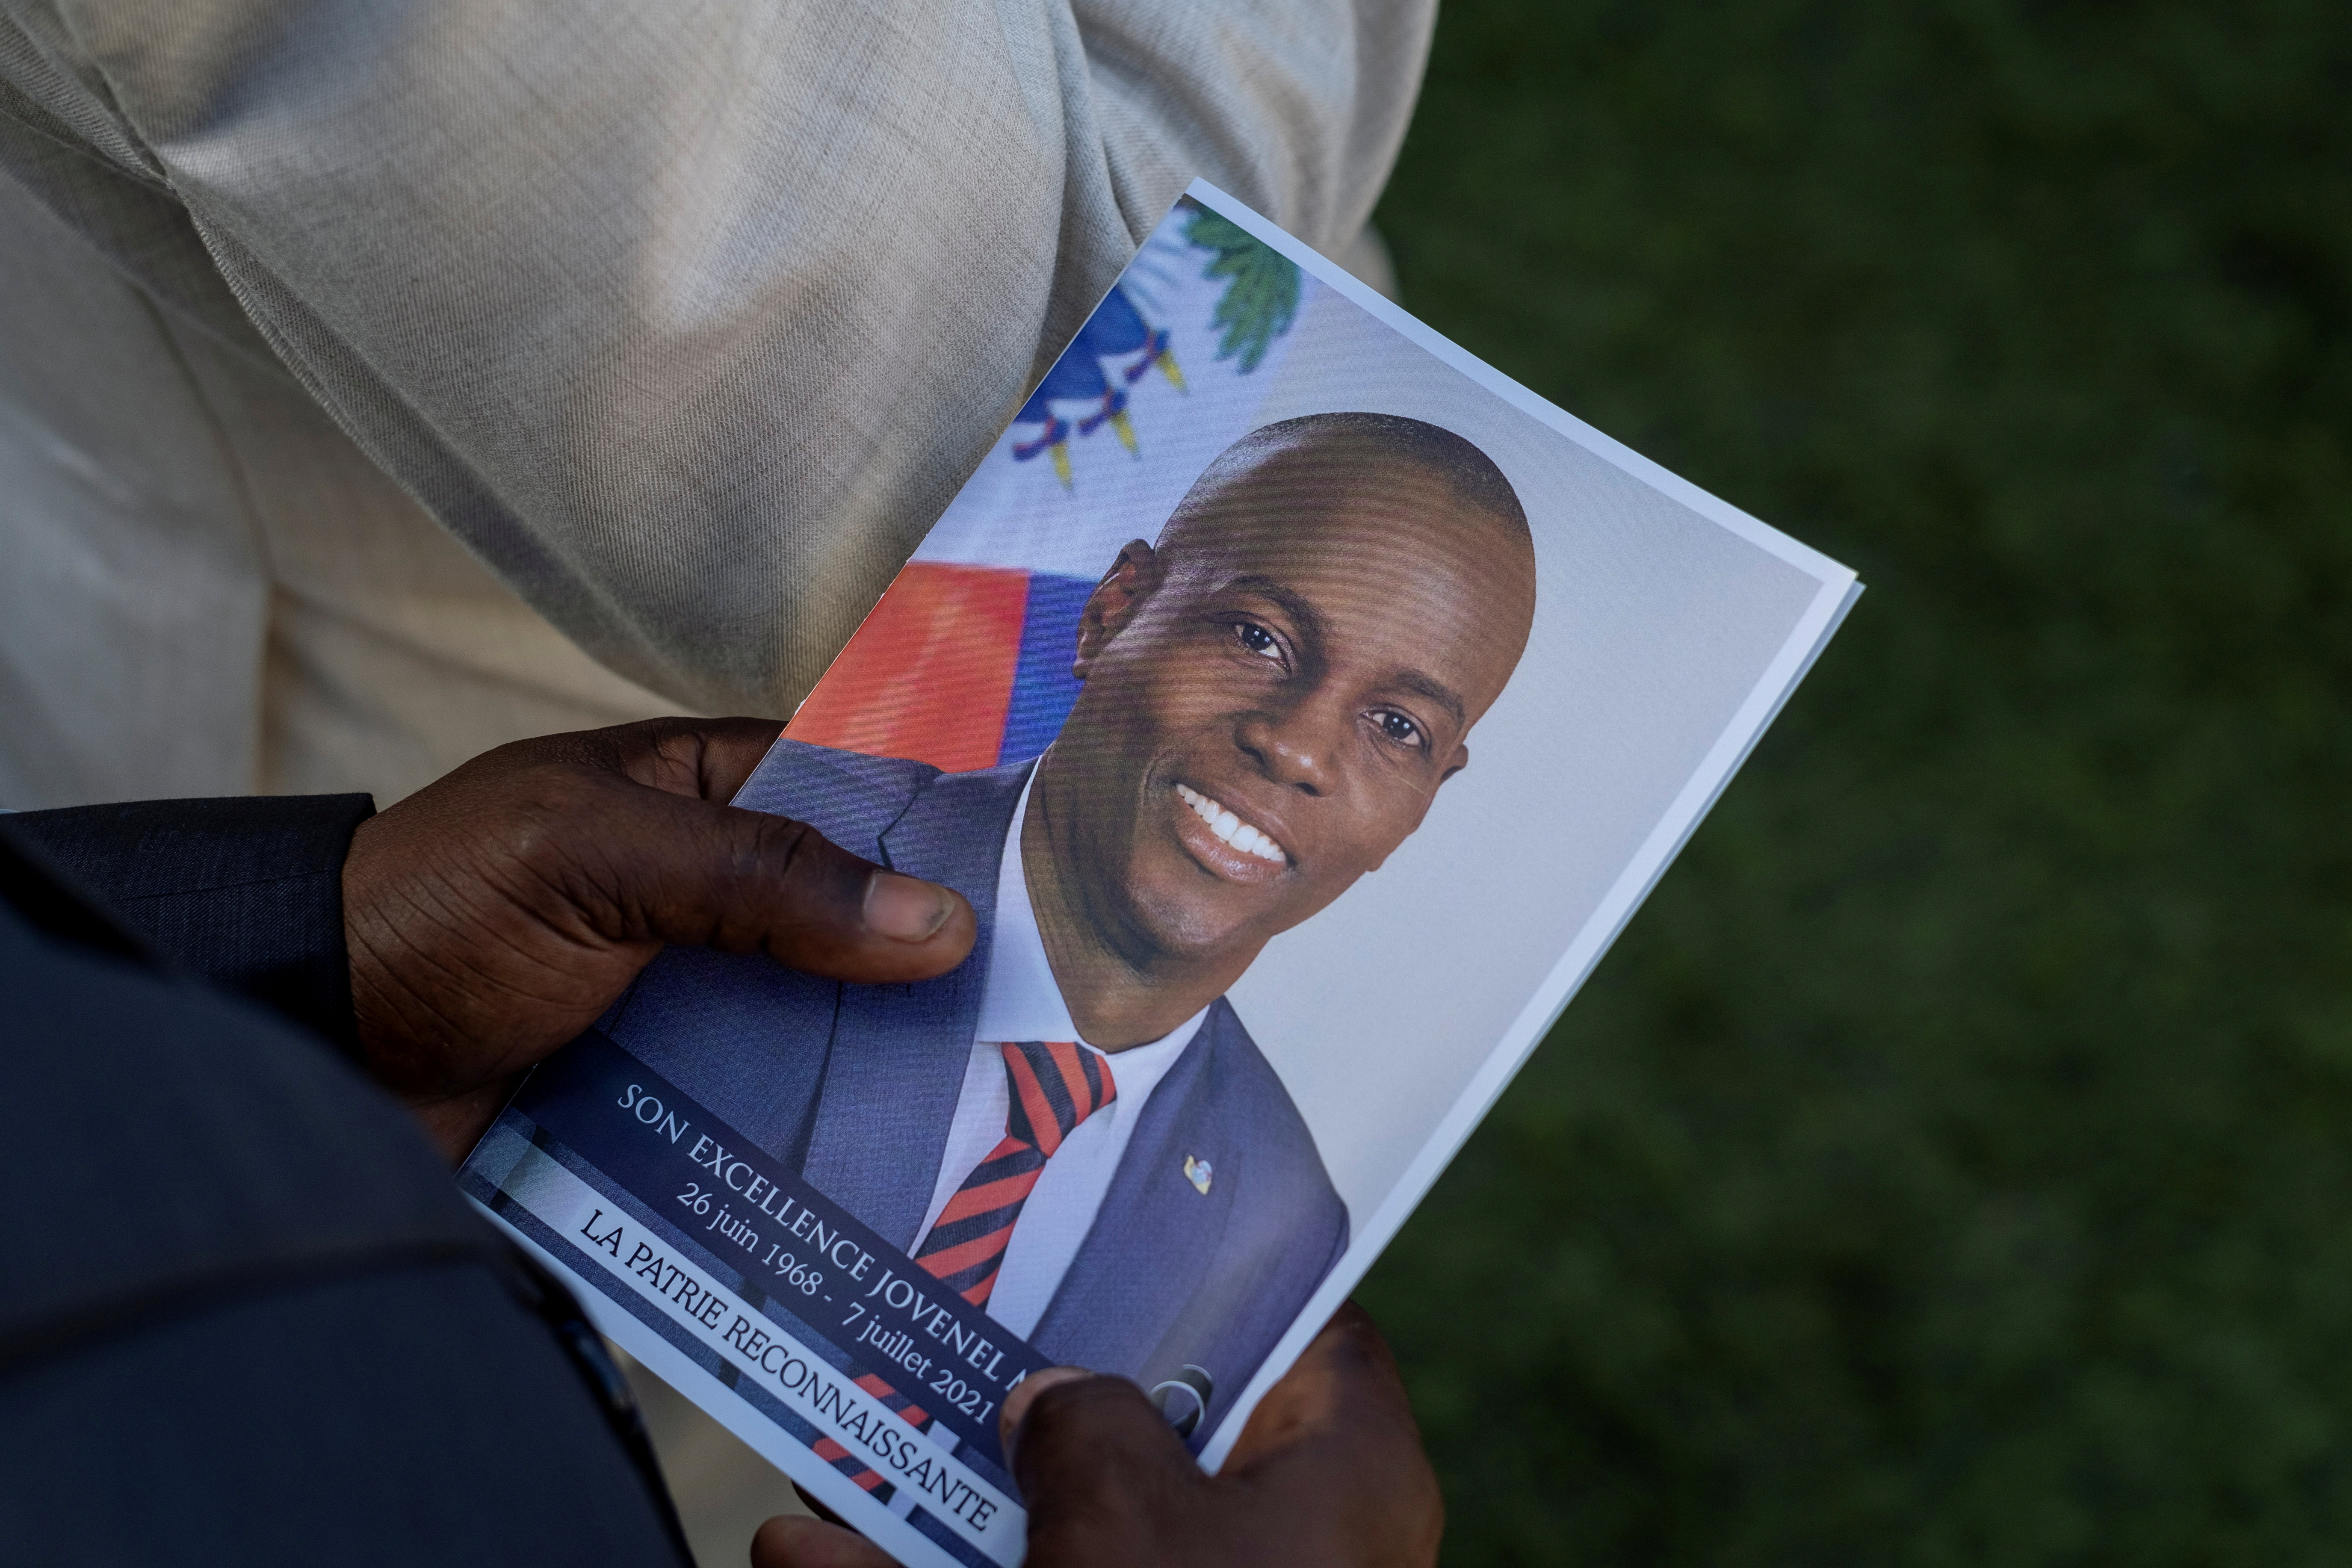 A person holds a photo of late Haitian President Jovenel Moise, who was shot dead earlier this month, during his funeral at his family home in Cap-Haitien, Haiti, July 23, 2021. REUTERS/Ricardo Arduengo